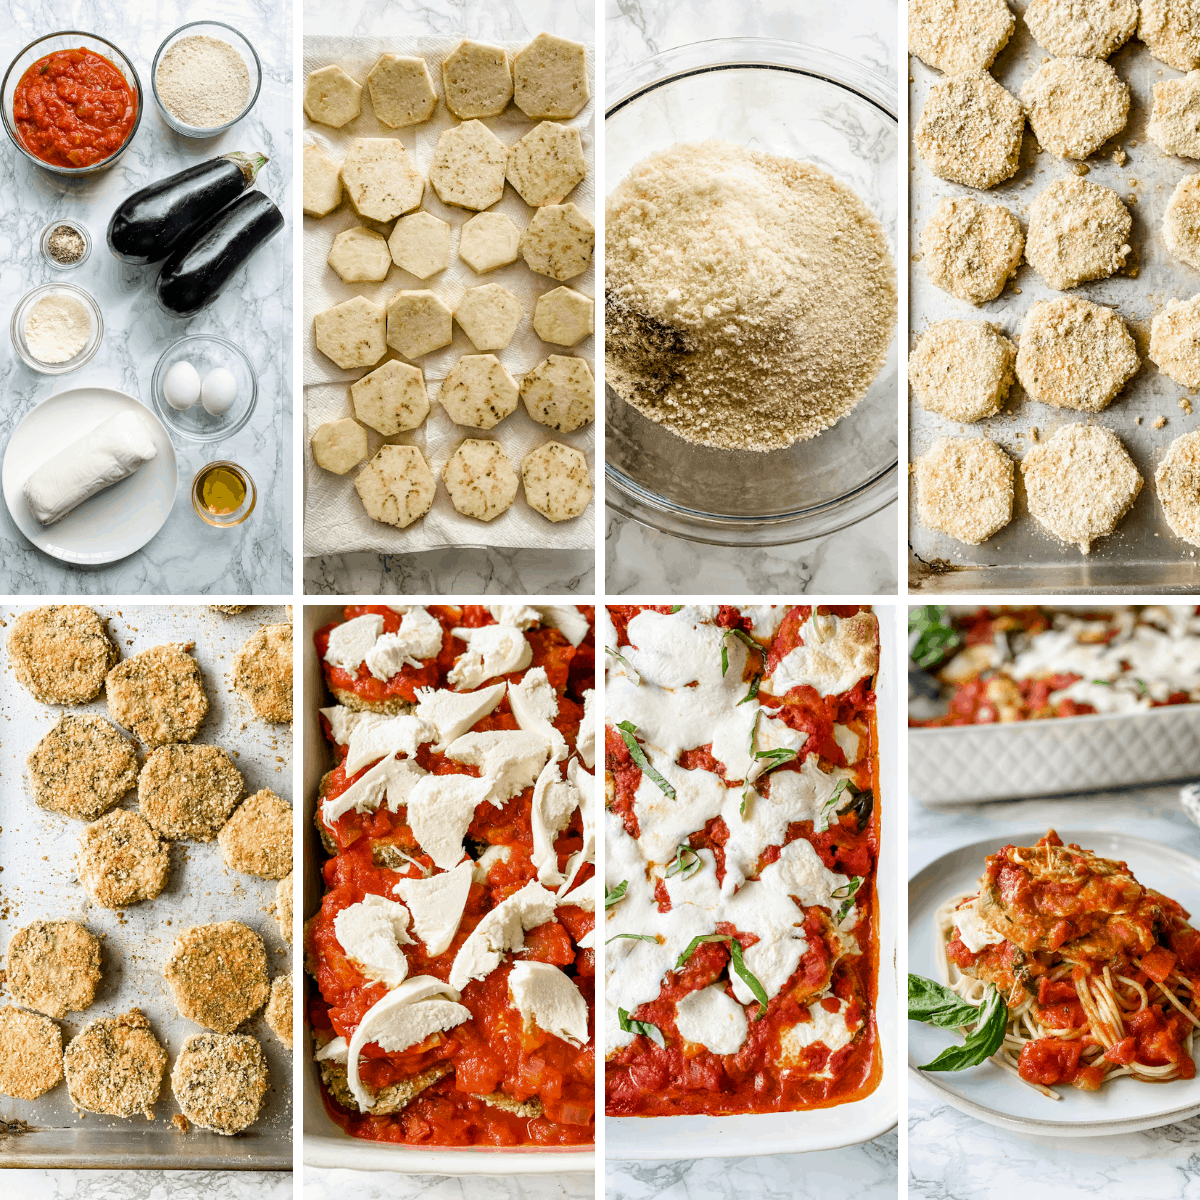 step by step collage showing how to make baked Eggplant Parmesan.